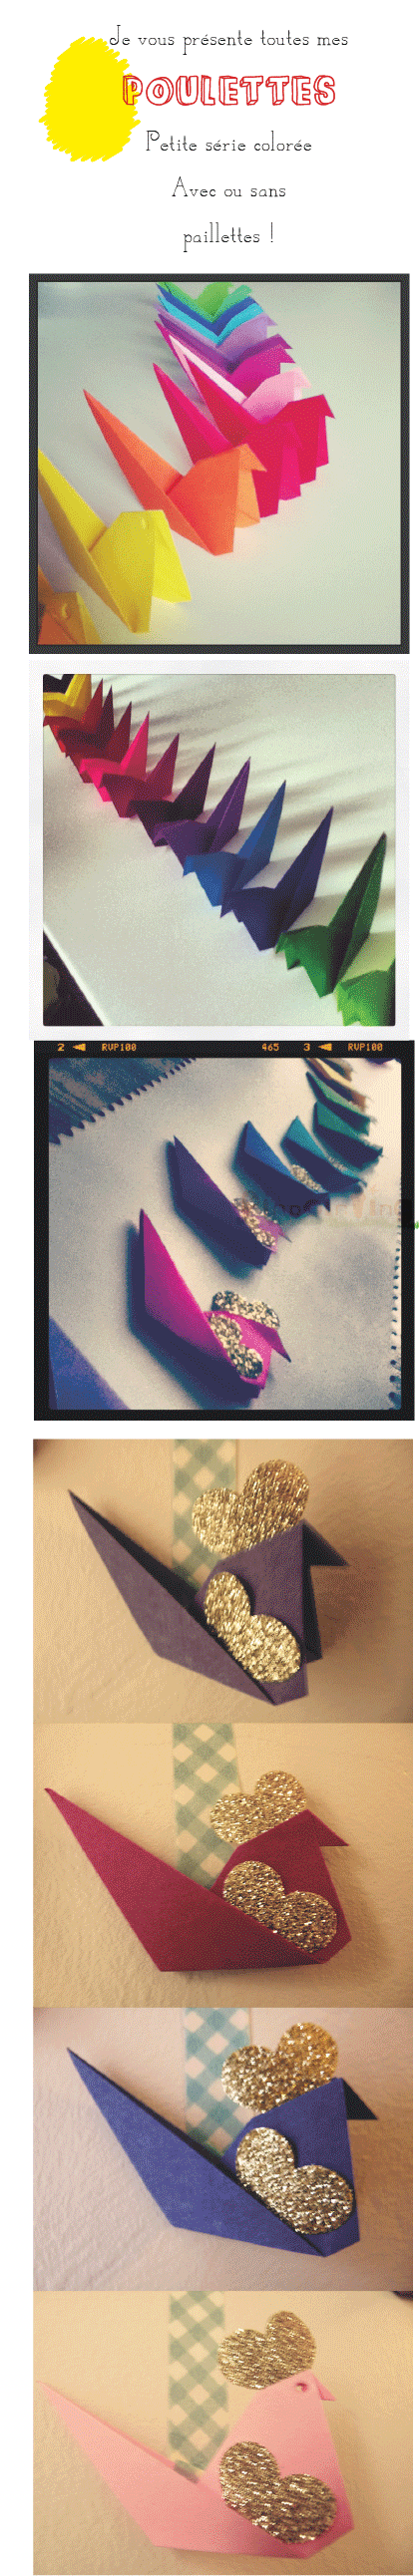 origami, poule, facile, pinpointing